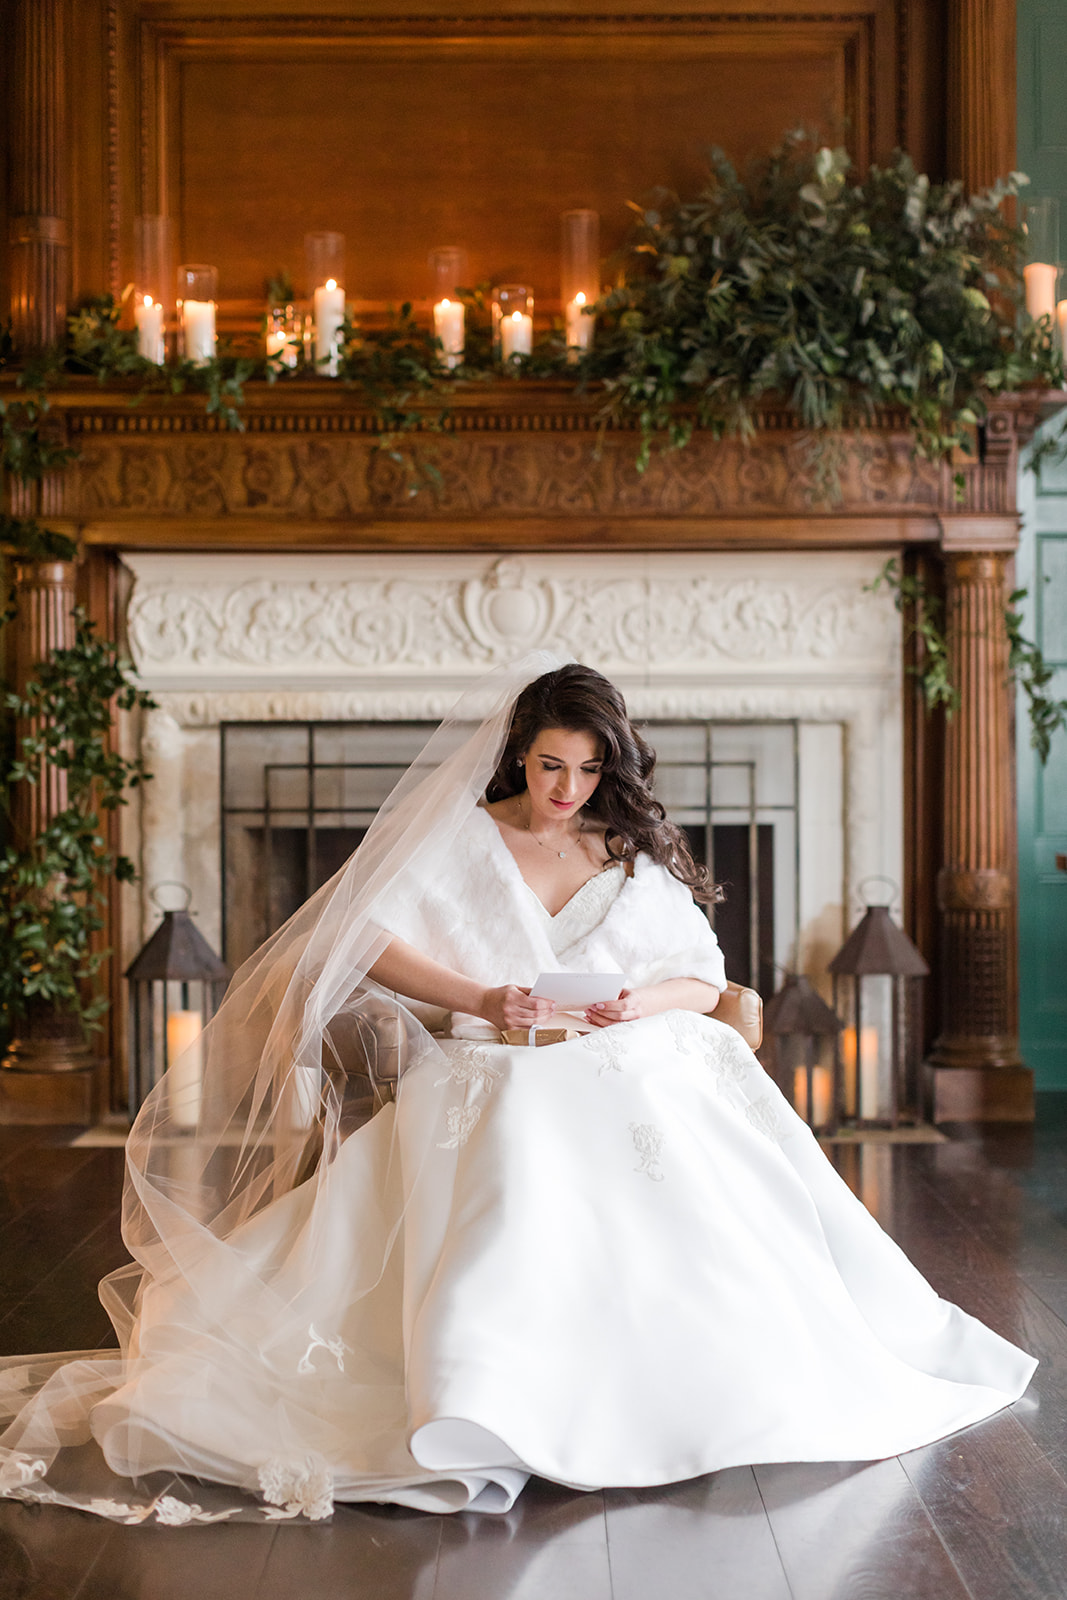 bride with fur overcoat sitting in fron of fireplace reading a letter from the groom